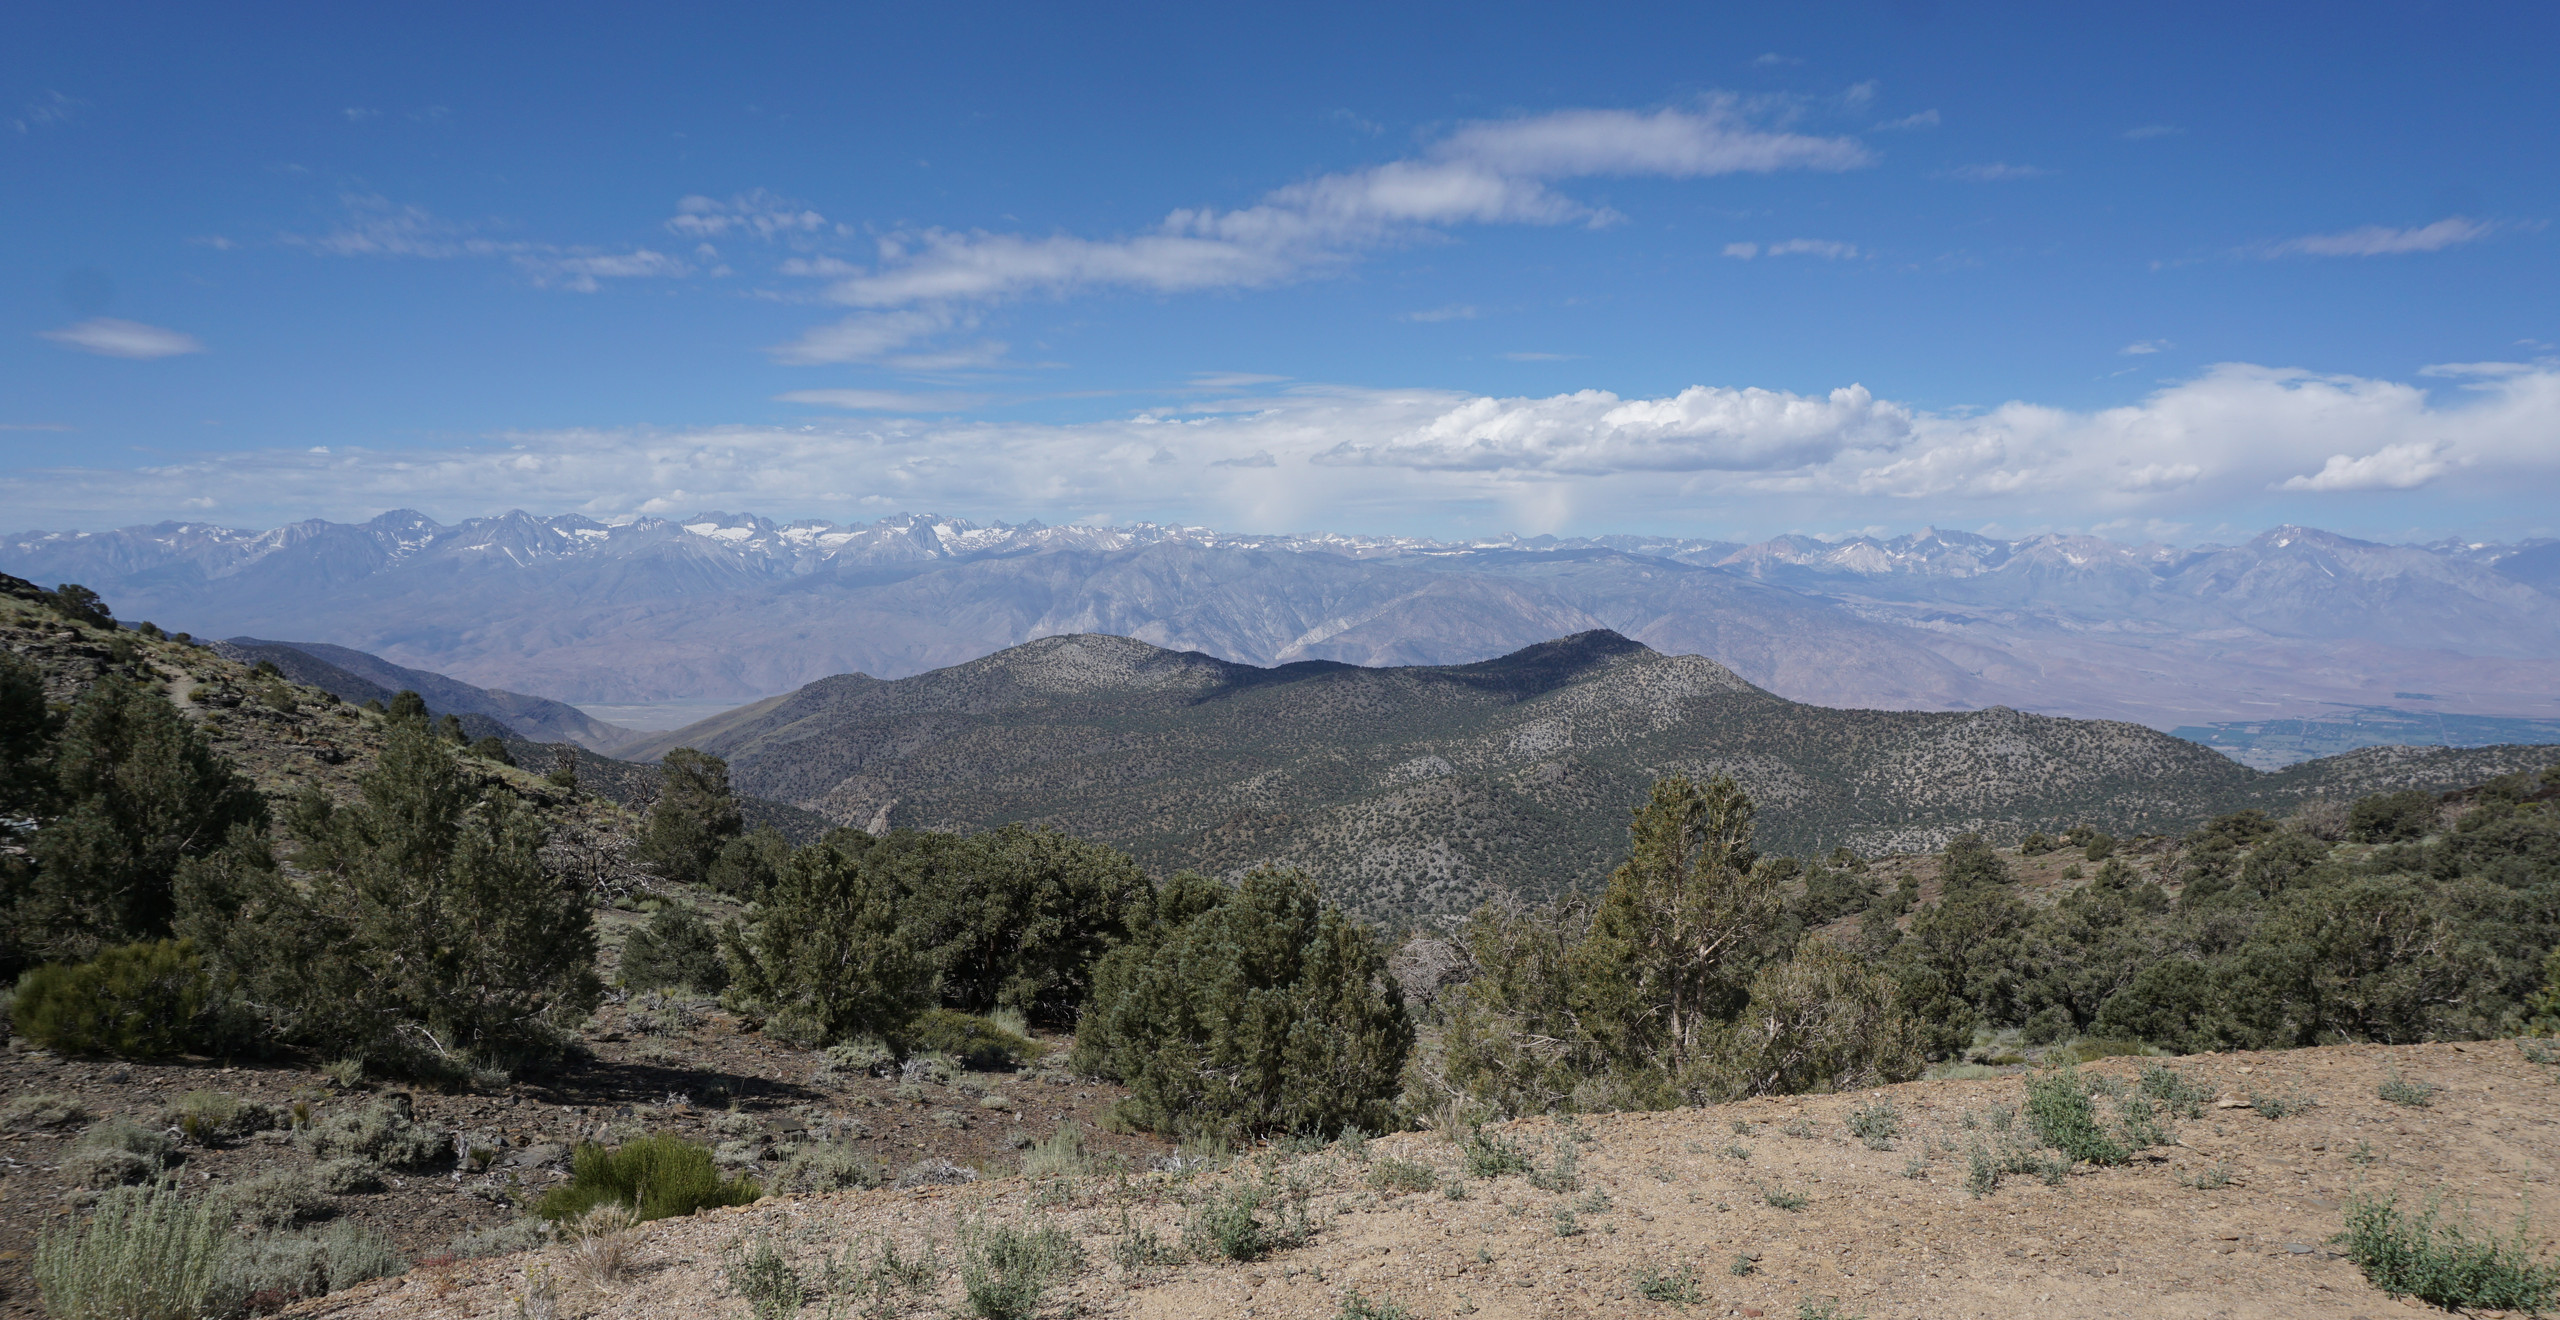 Looking west to the Sierra Nevadas from the White Mountains, CA